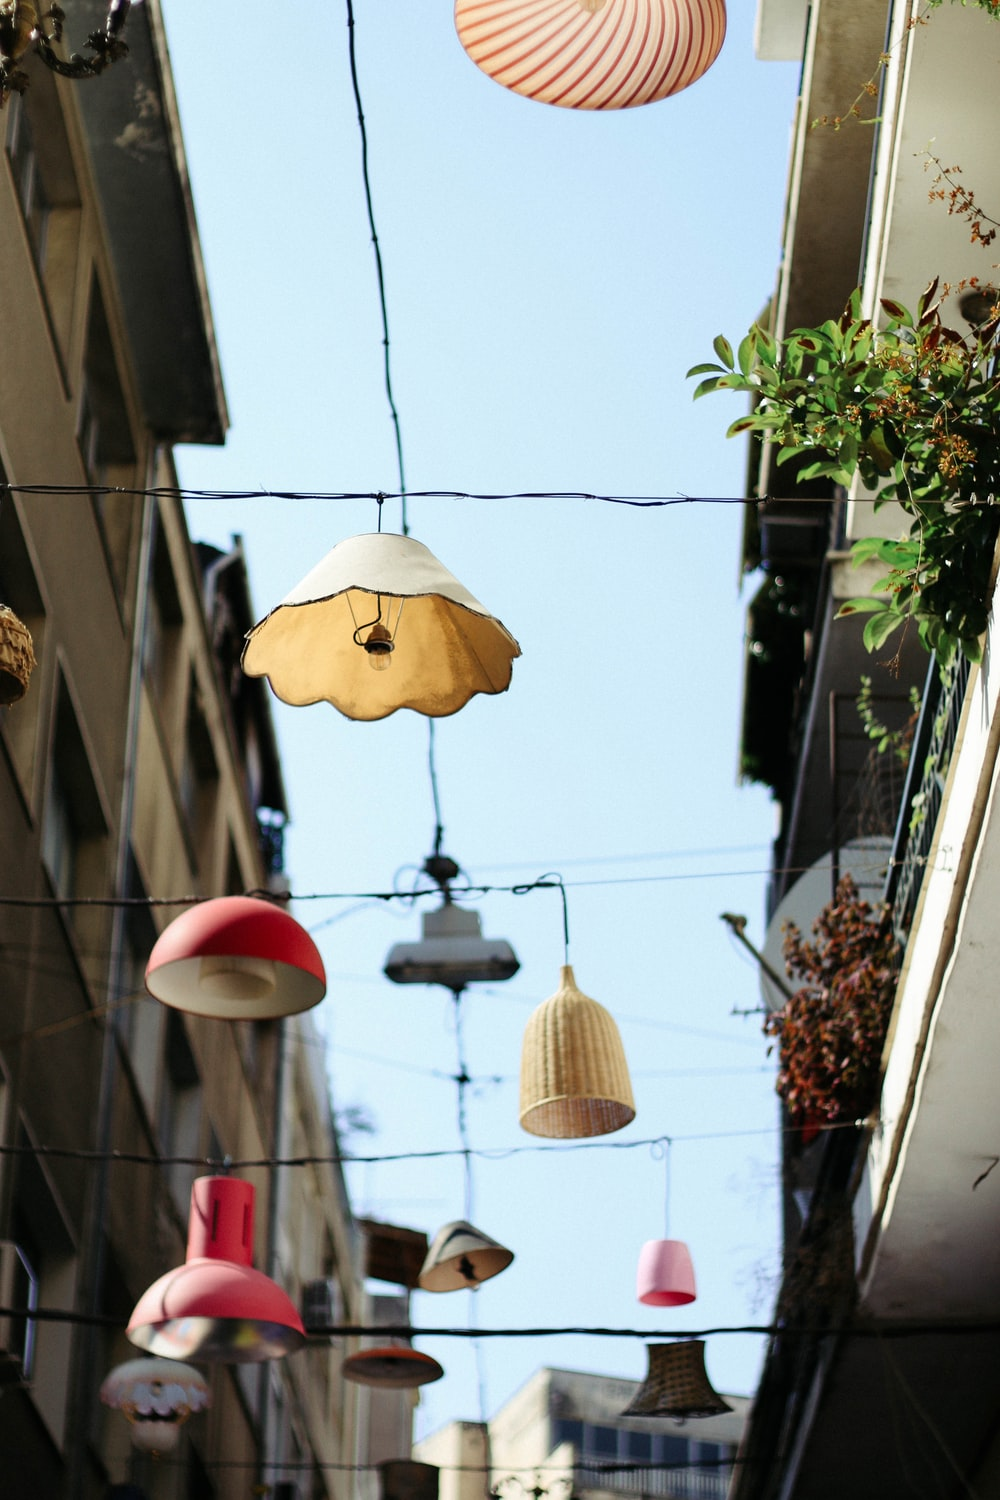 low angle photography of assorted-color lamps hang on wire between white buildings